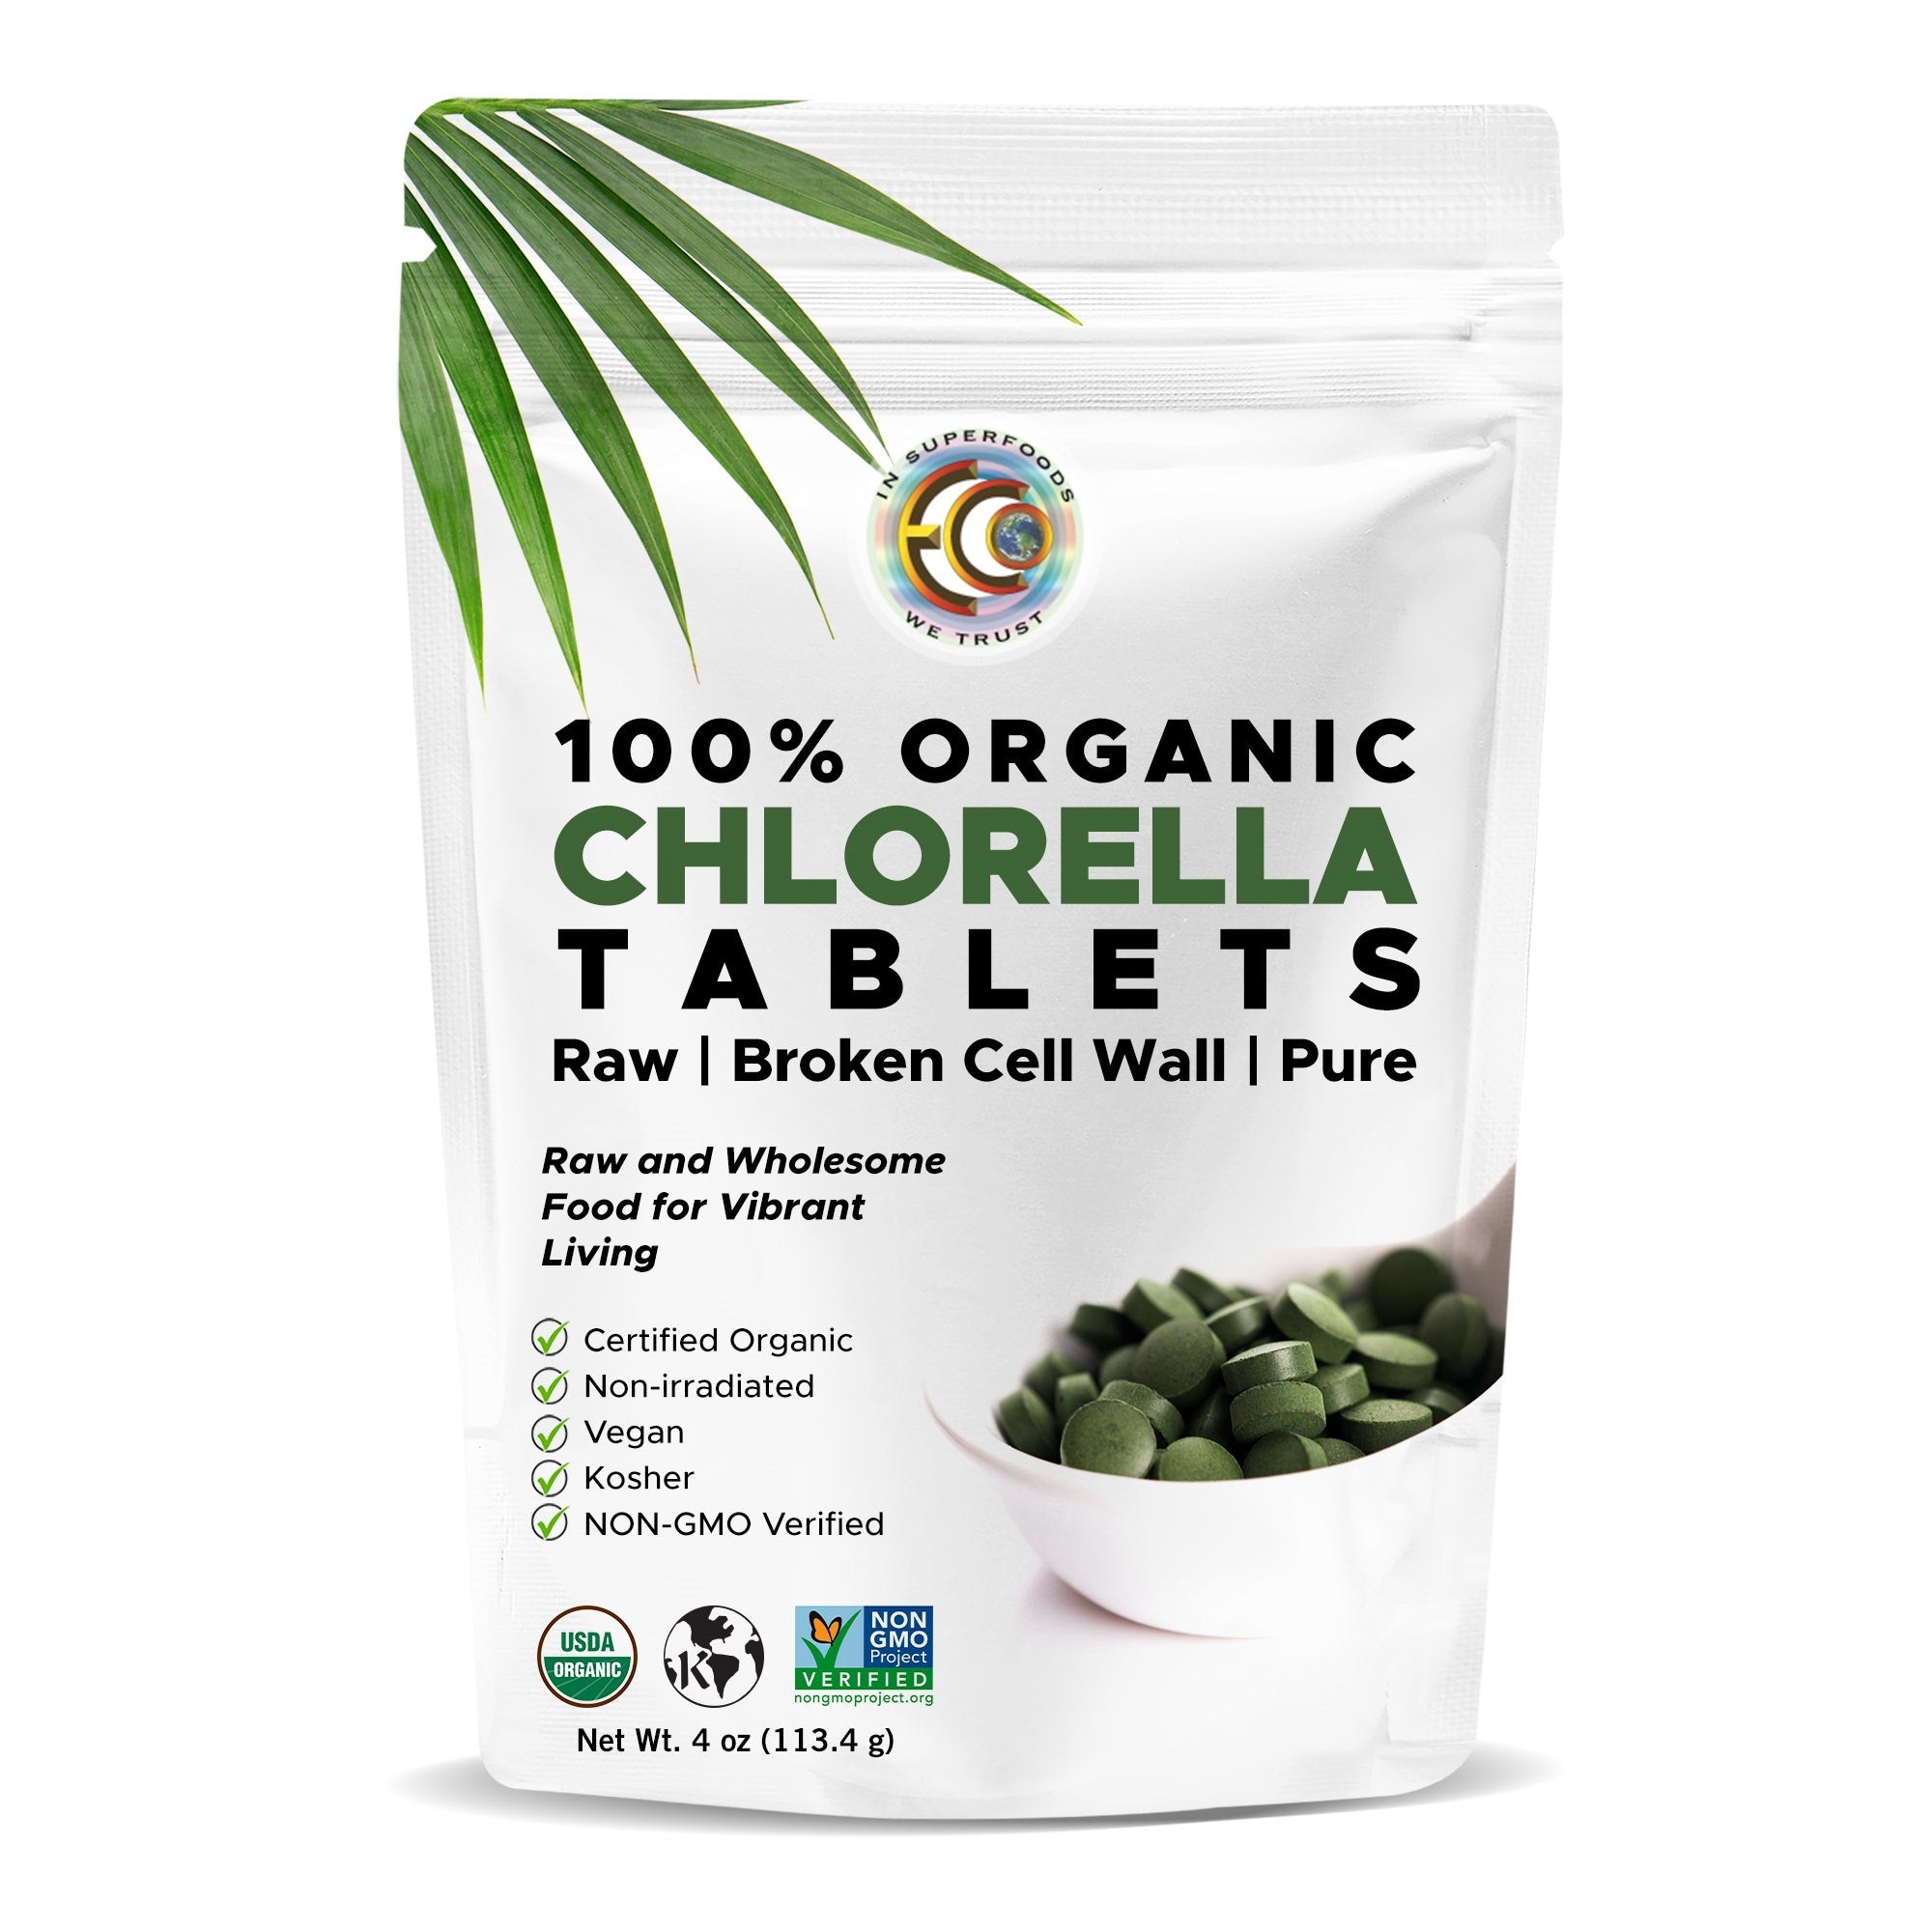 Chlorella Tablets | USDA Certified Organic | Kosher | High Potency | Cracked Cell Wall - 400 Tablets